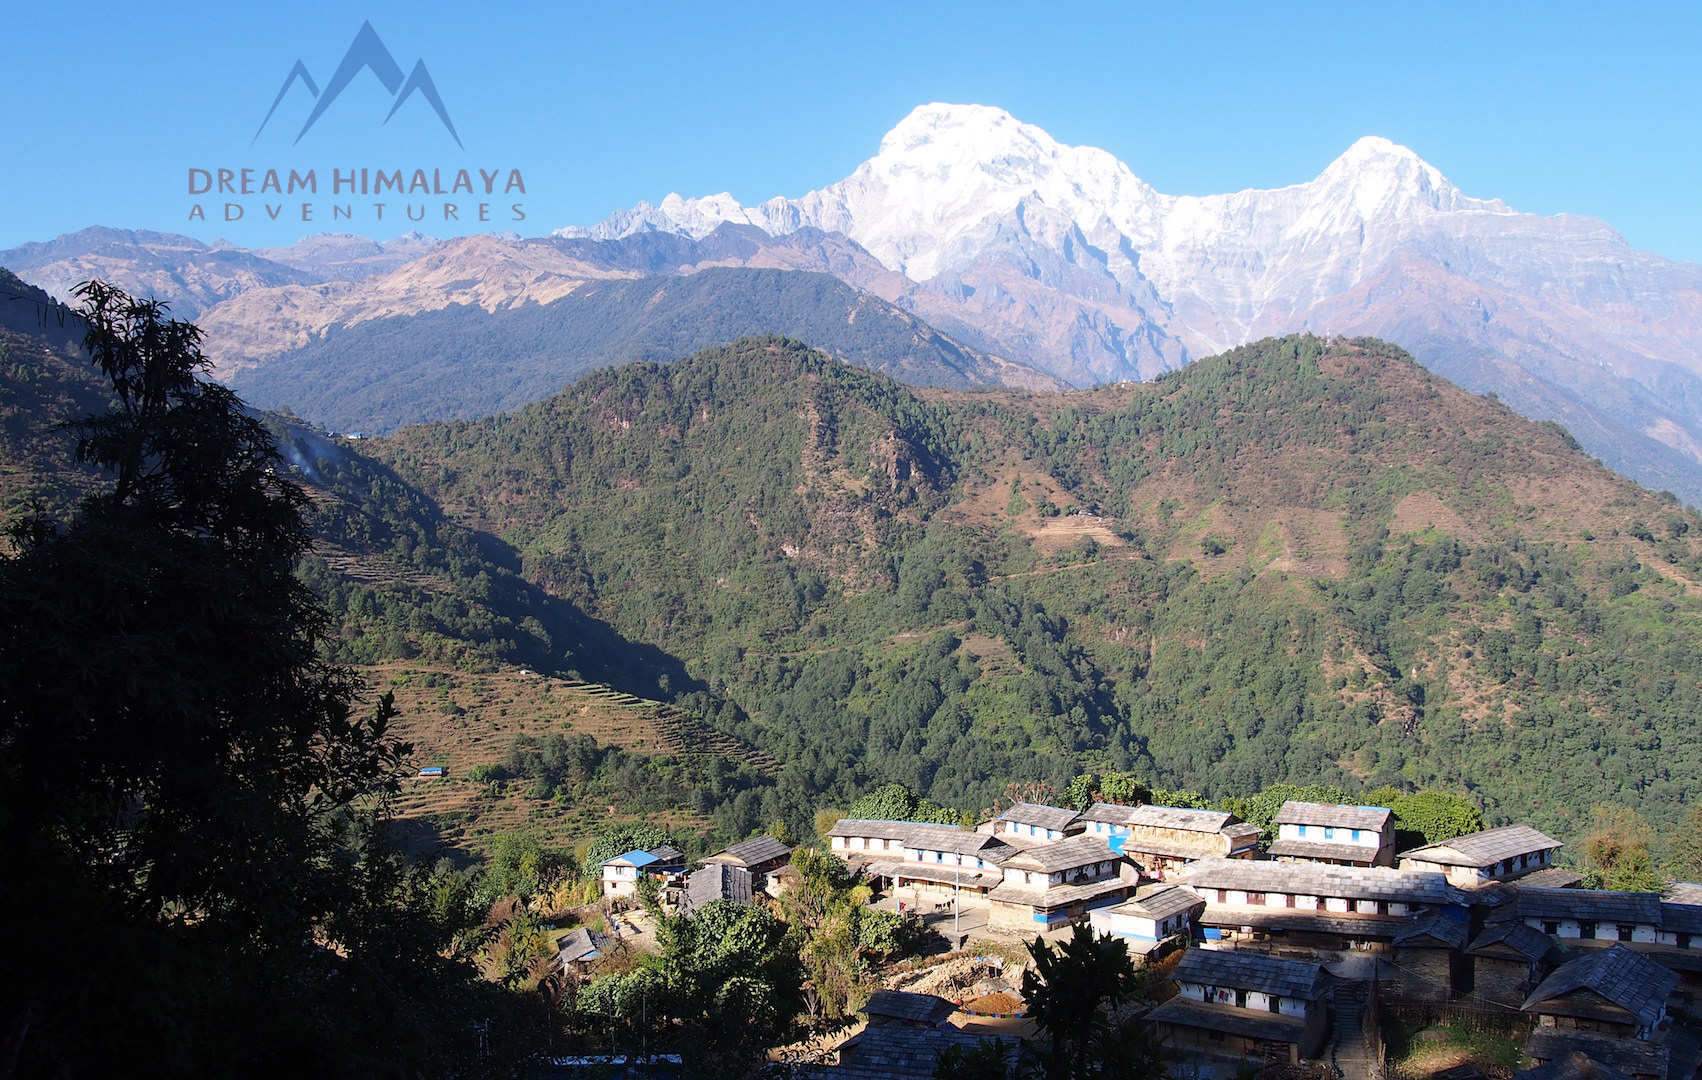 Local village Mardi himal trekking